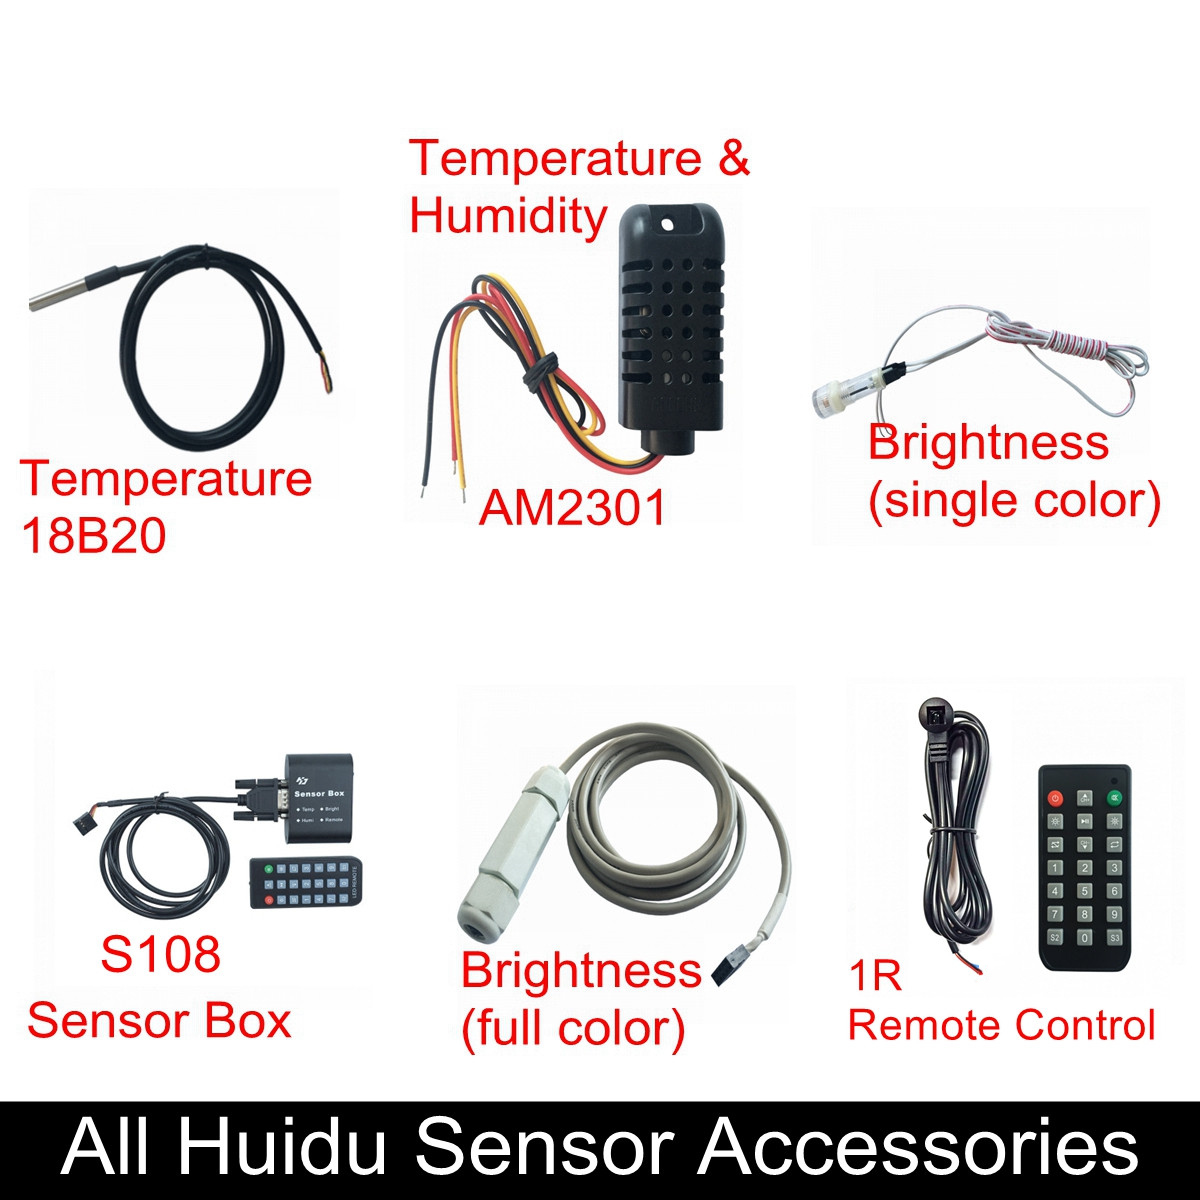 All Huidu Sensors Temperature 18B20 Temperature & Humidity AM2301Single RGB Brightness S108 Box 1R Remote